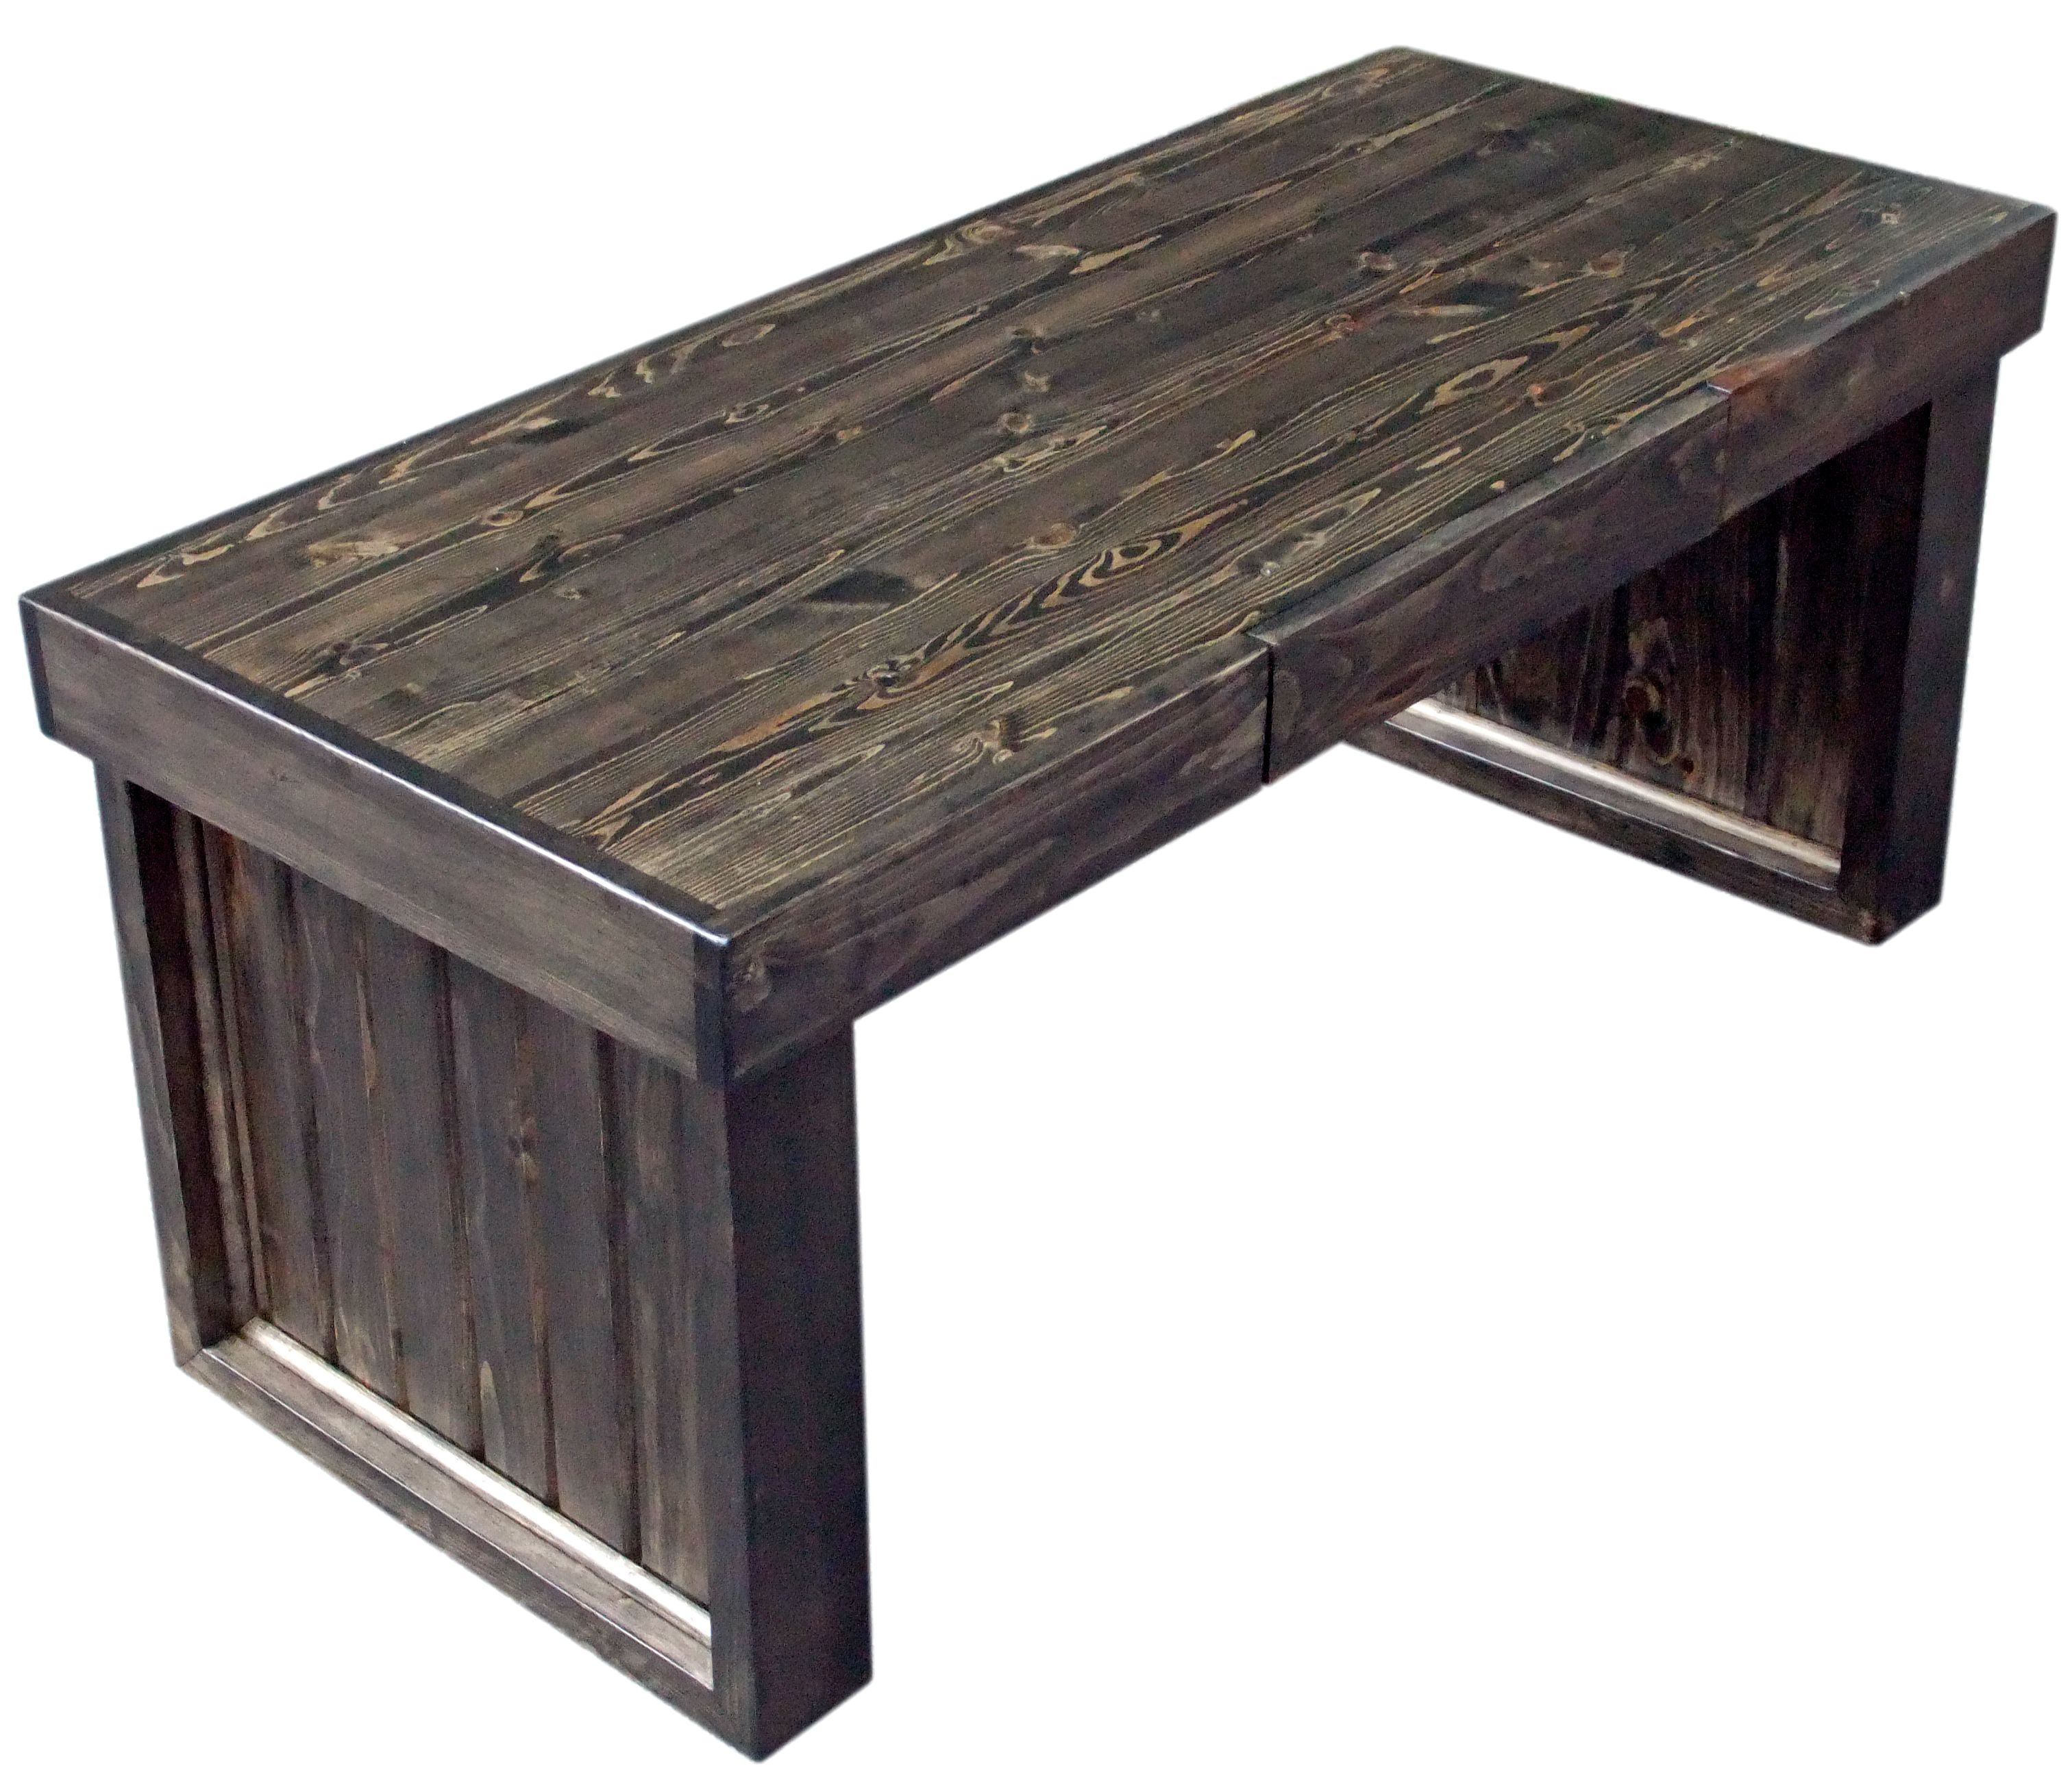 This rugged looking pine coffee table is finished with ebony stain